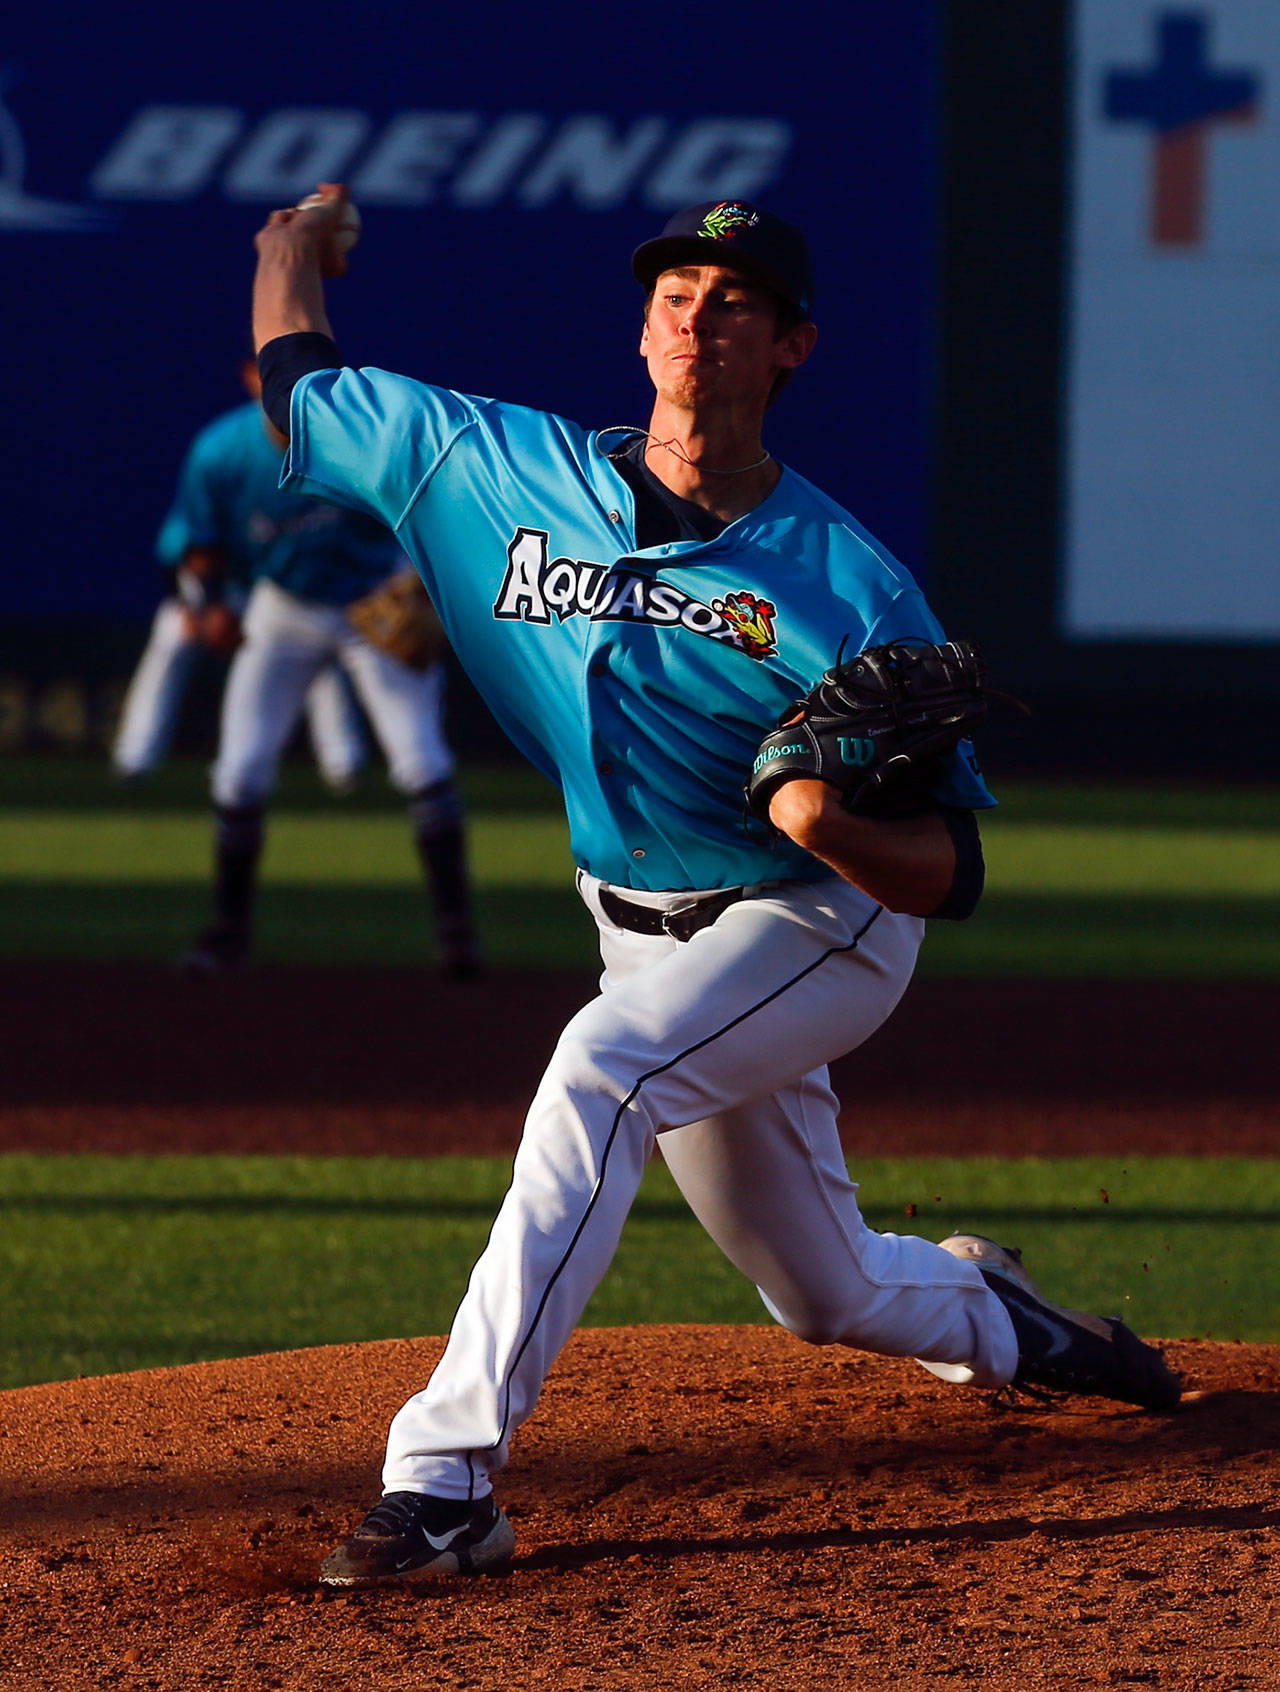 AquaSox pitcher Emerson Hancock was selected to the All-Star Futures Game, which showcases baseball's top minor league prospects. (Kevin Clark / The Herald)